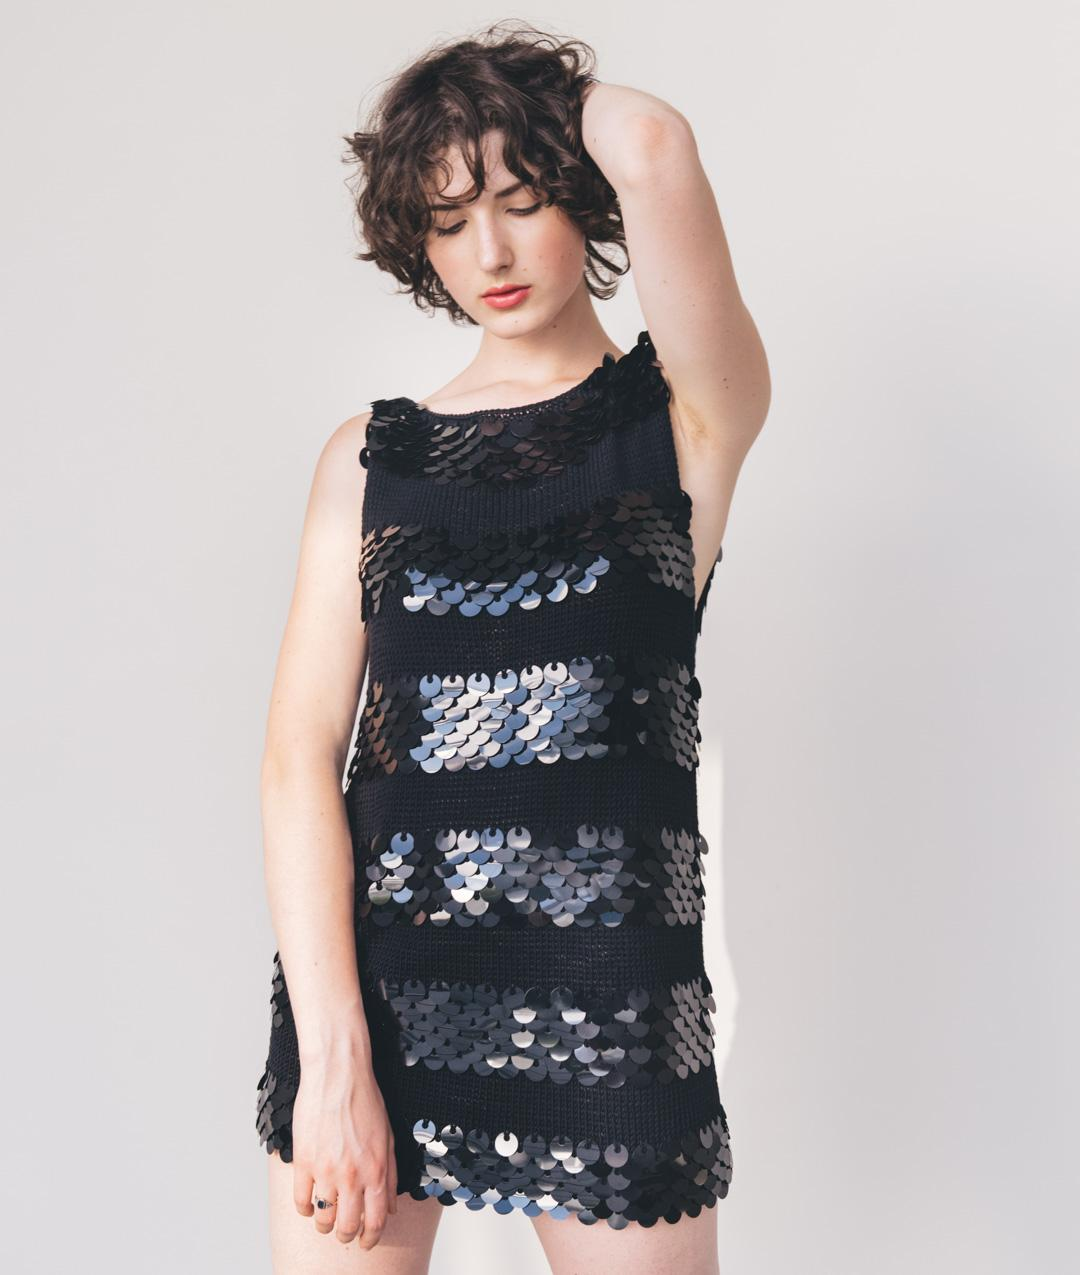 Black Label Collection - Sweaters and TopsBlack Label Collection - Dress - Pluto Dress - 1